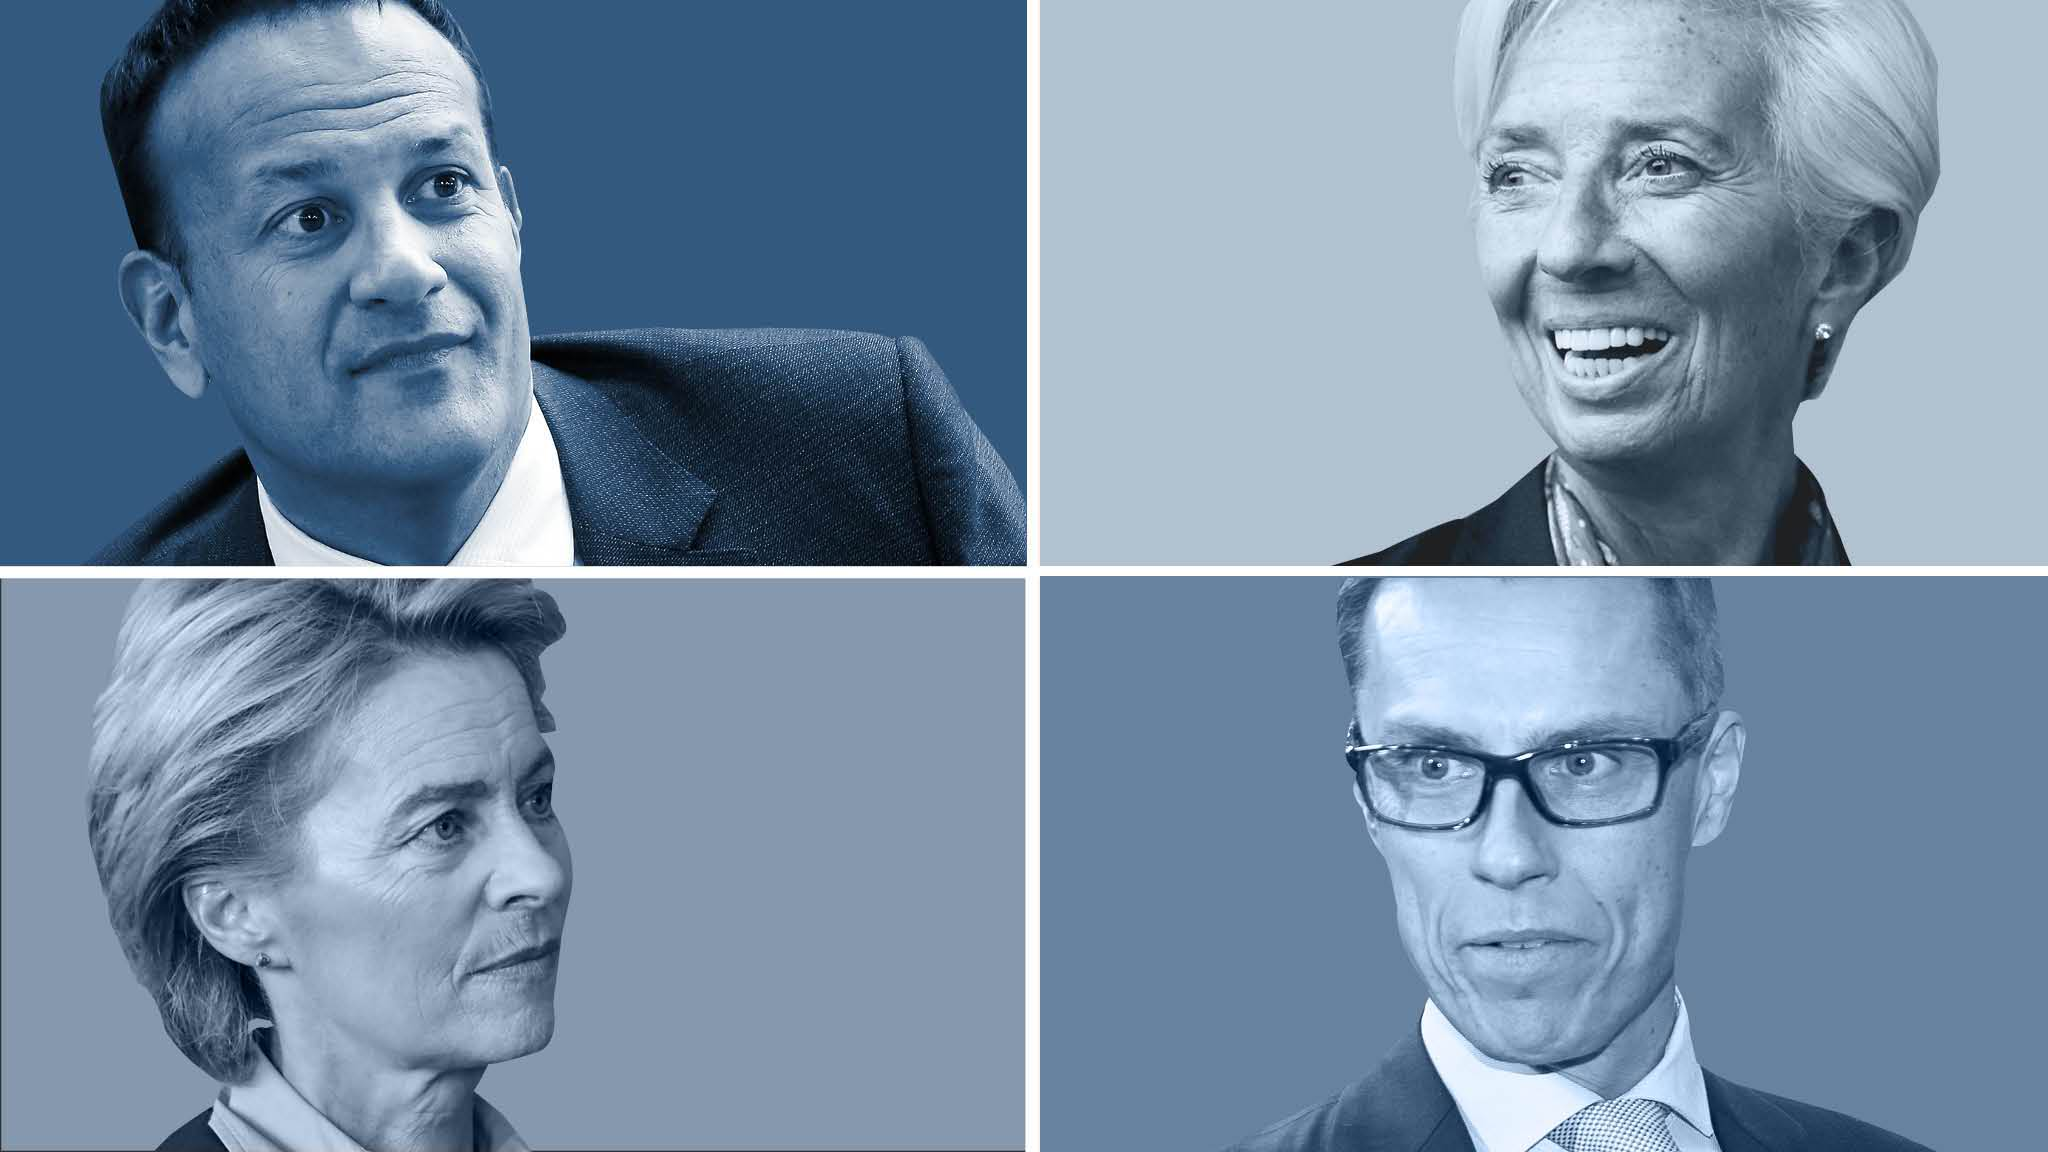 Europe's centre-right seeks perfect face to replace Juncker